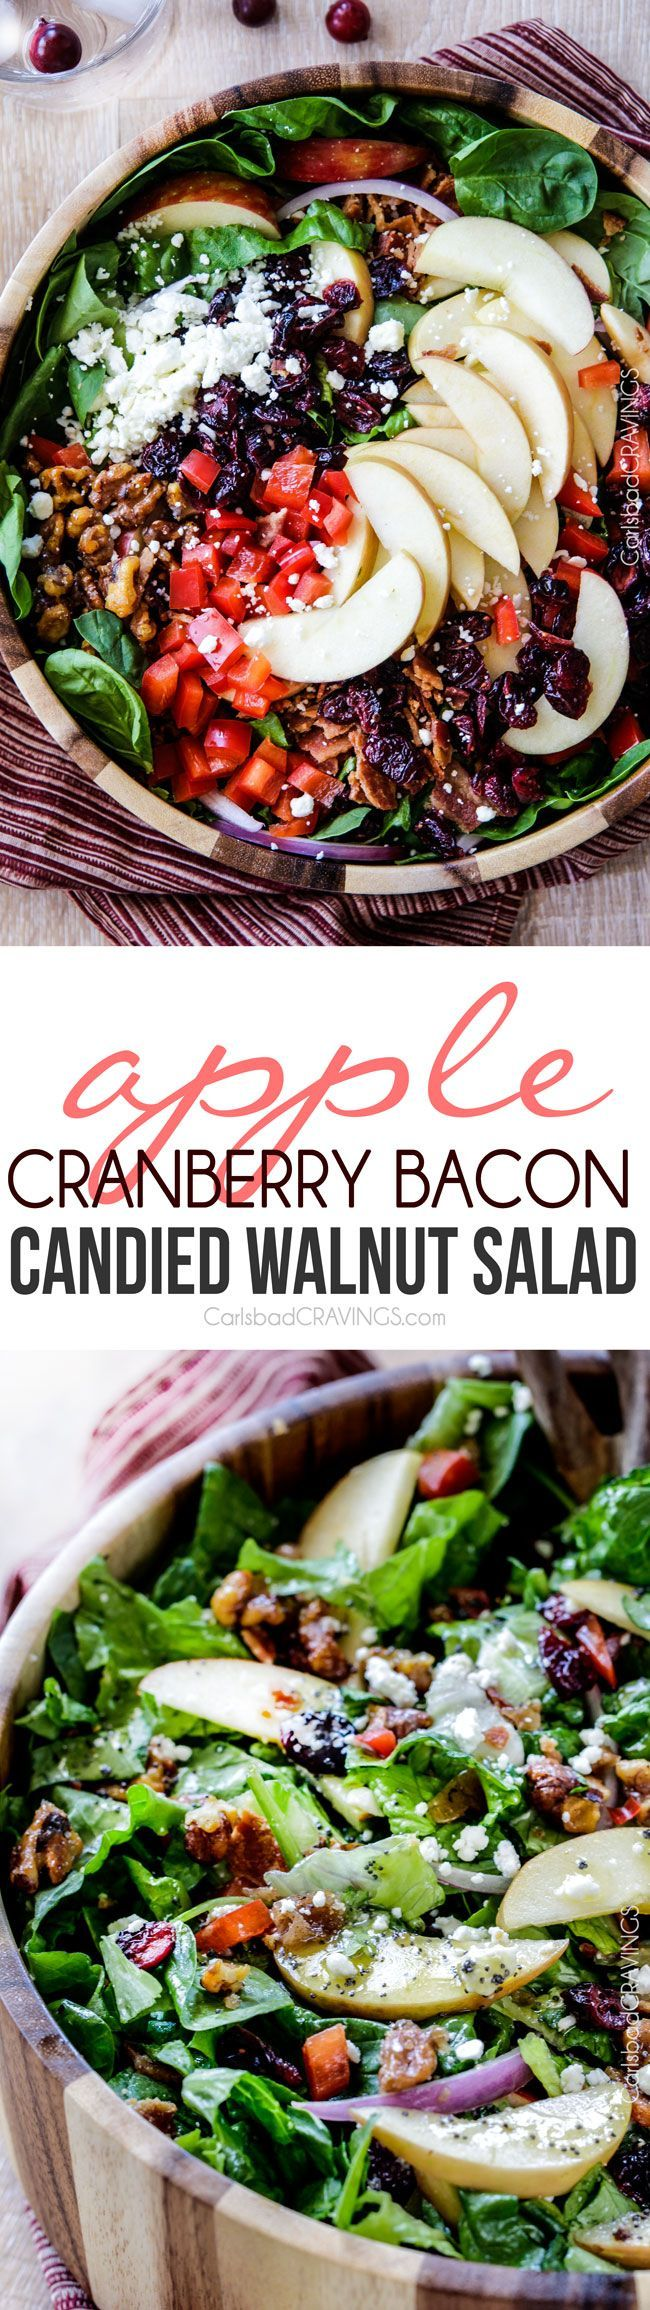 Apple Cranberry Bacon Candied Walnut Salad with Apple Poppy Seed Vinaigrette belongs on your table this Thanksgiving and all Autumn long! so addictively delicious and the dressing is amazing!